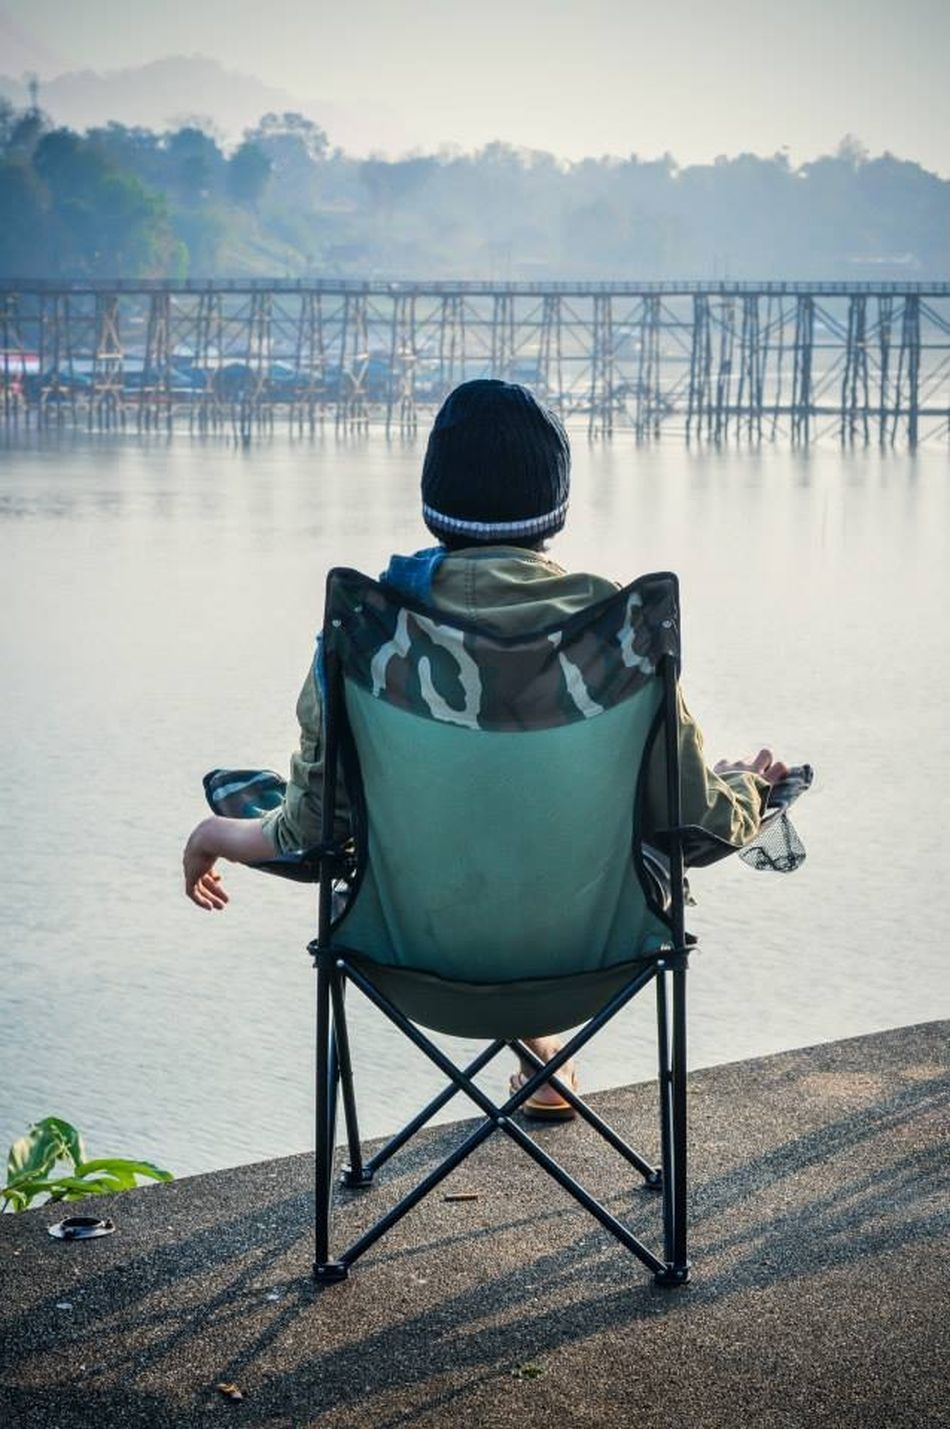 Chair Relaxing Freedom Thailand Moments Enjoying Life OpenEdit Memories Starting A Trip ระหว่างทาง